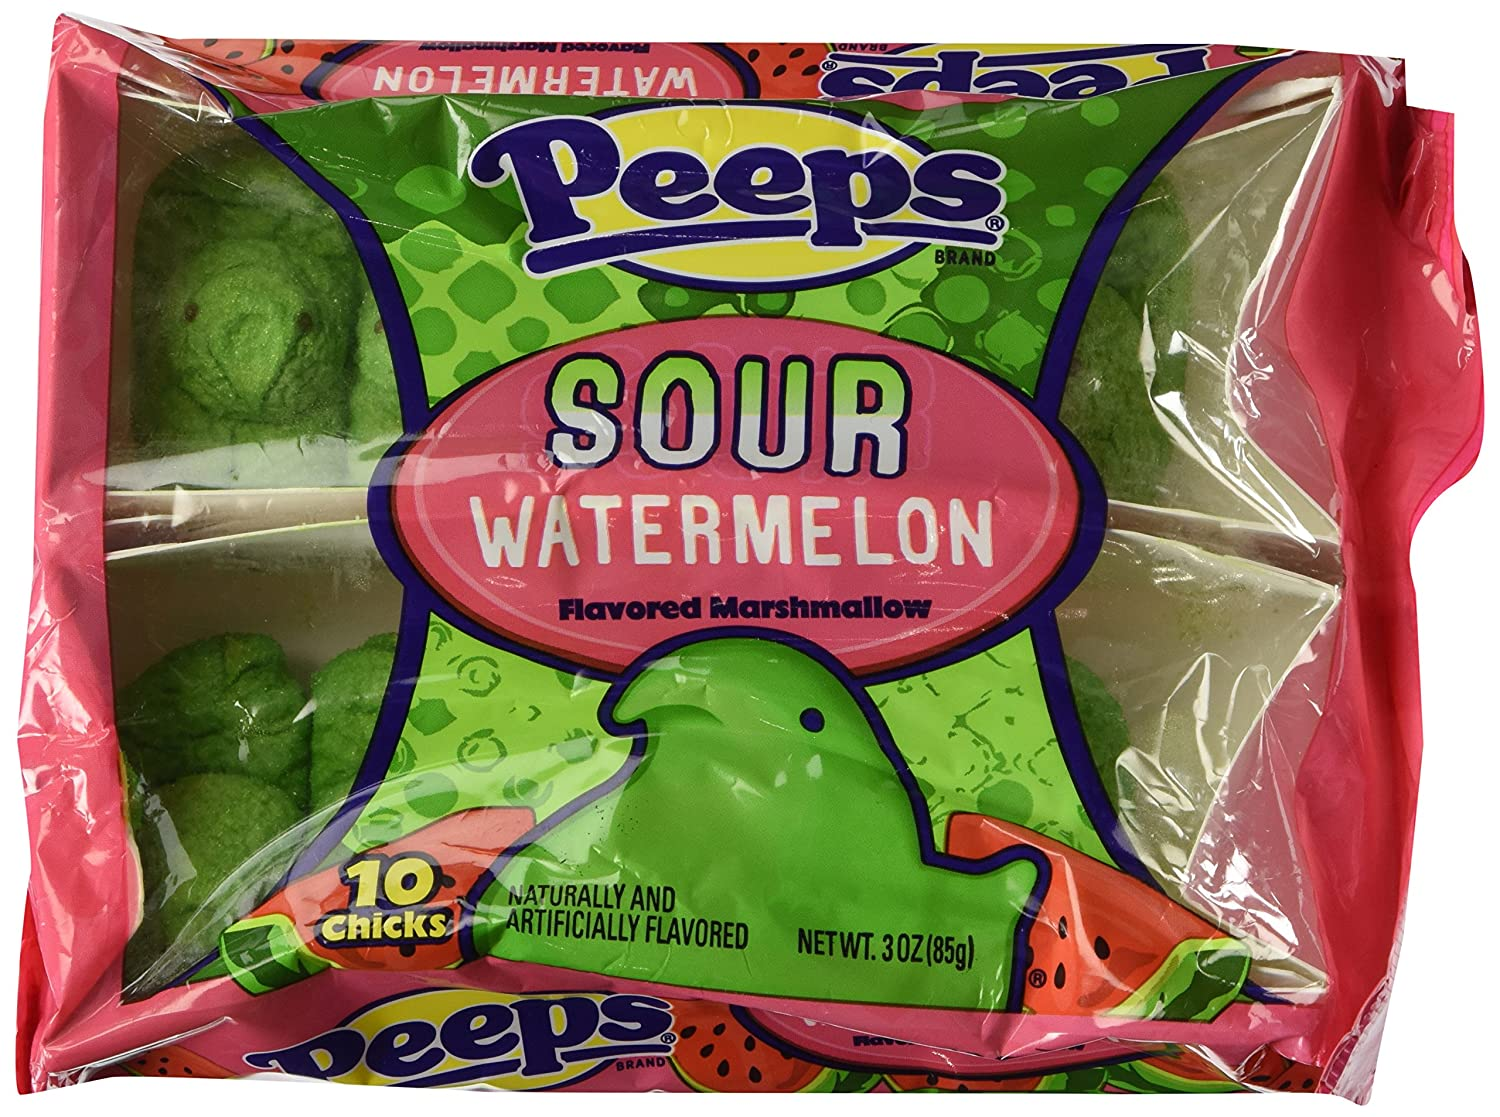 PEEPS SOUR WATERMELON FLAVORED MARSHMALLOW Large-scale sale by PACK Peeps Popular popular 1